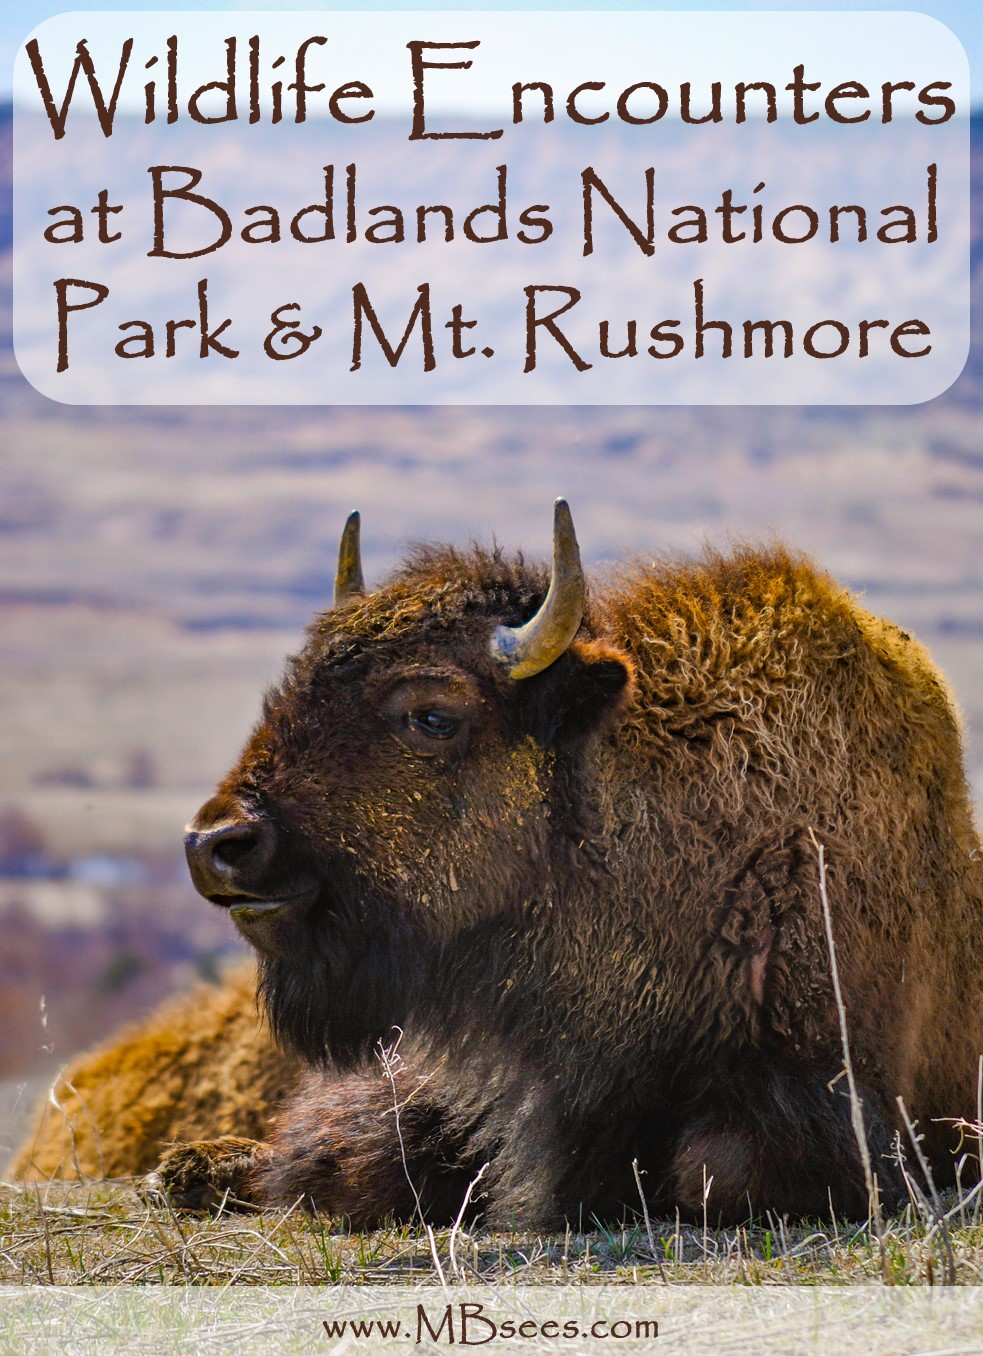 Spend a couple days at Mount Rushmore and Badlands National Park, and you just might see wildlife like mountain goat, bison, bighorn sheep and prairie dogs! Badlands Wildlife | Mount Rushmore Wildlife | South Dakota Wildlife #BadlandsWildlife #MountRushmoreWildlife #SouthDakotaWildlife